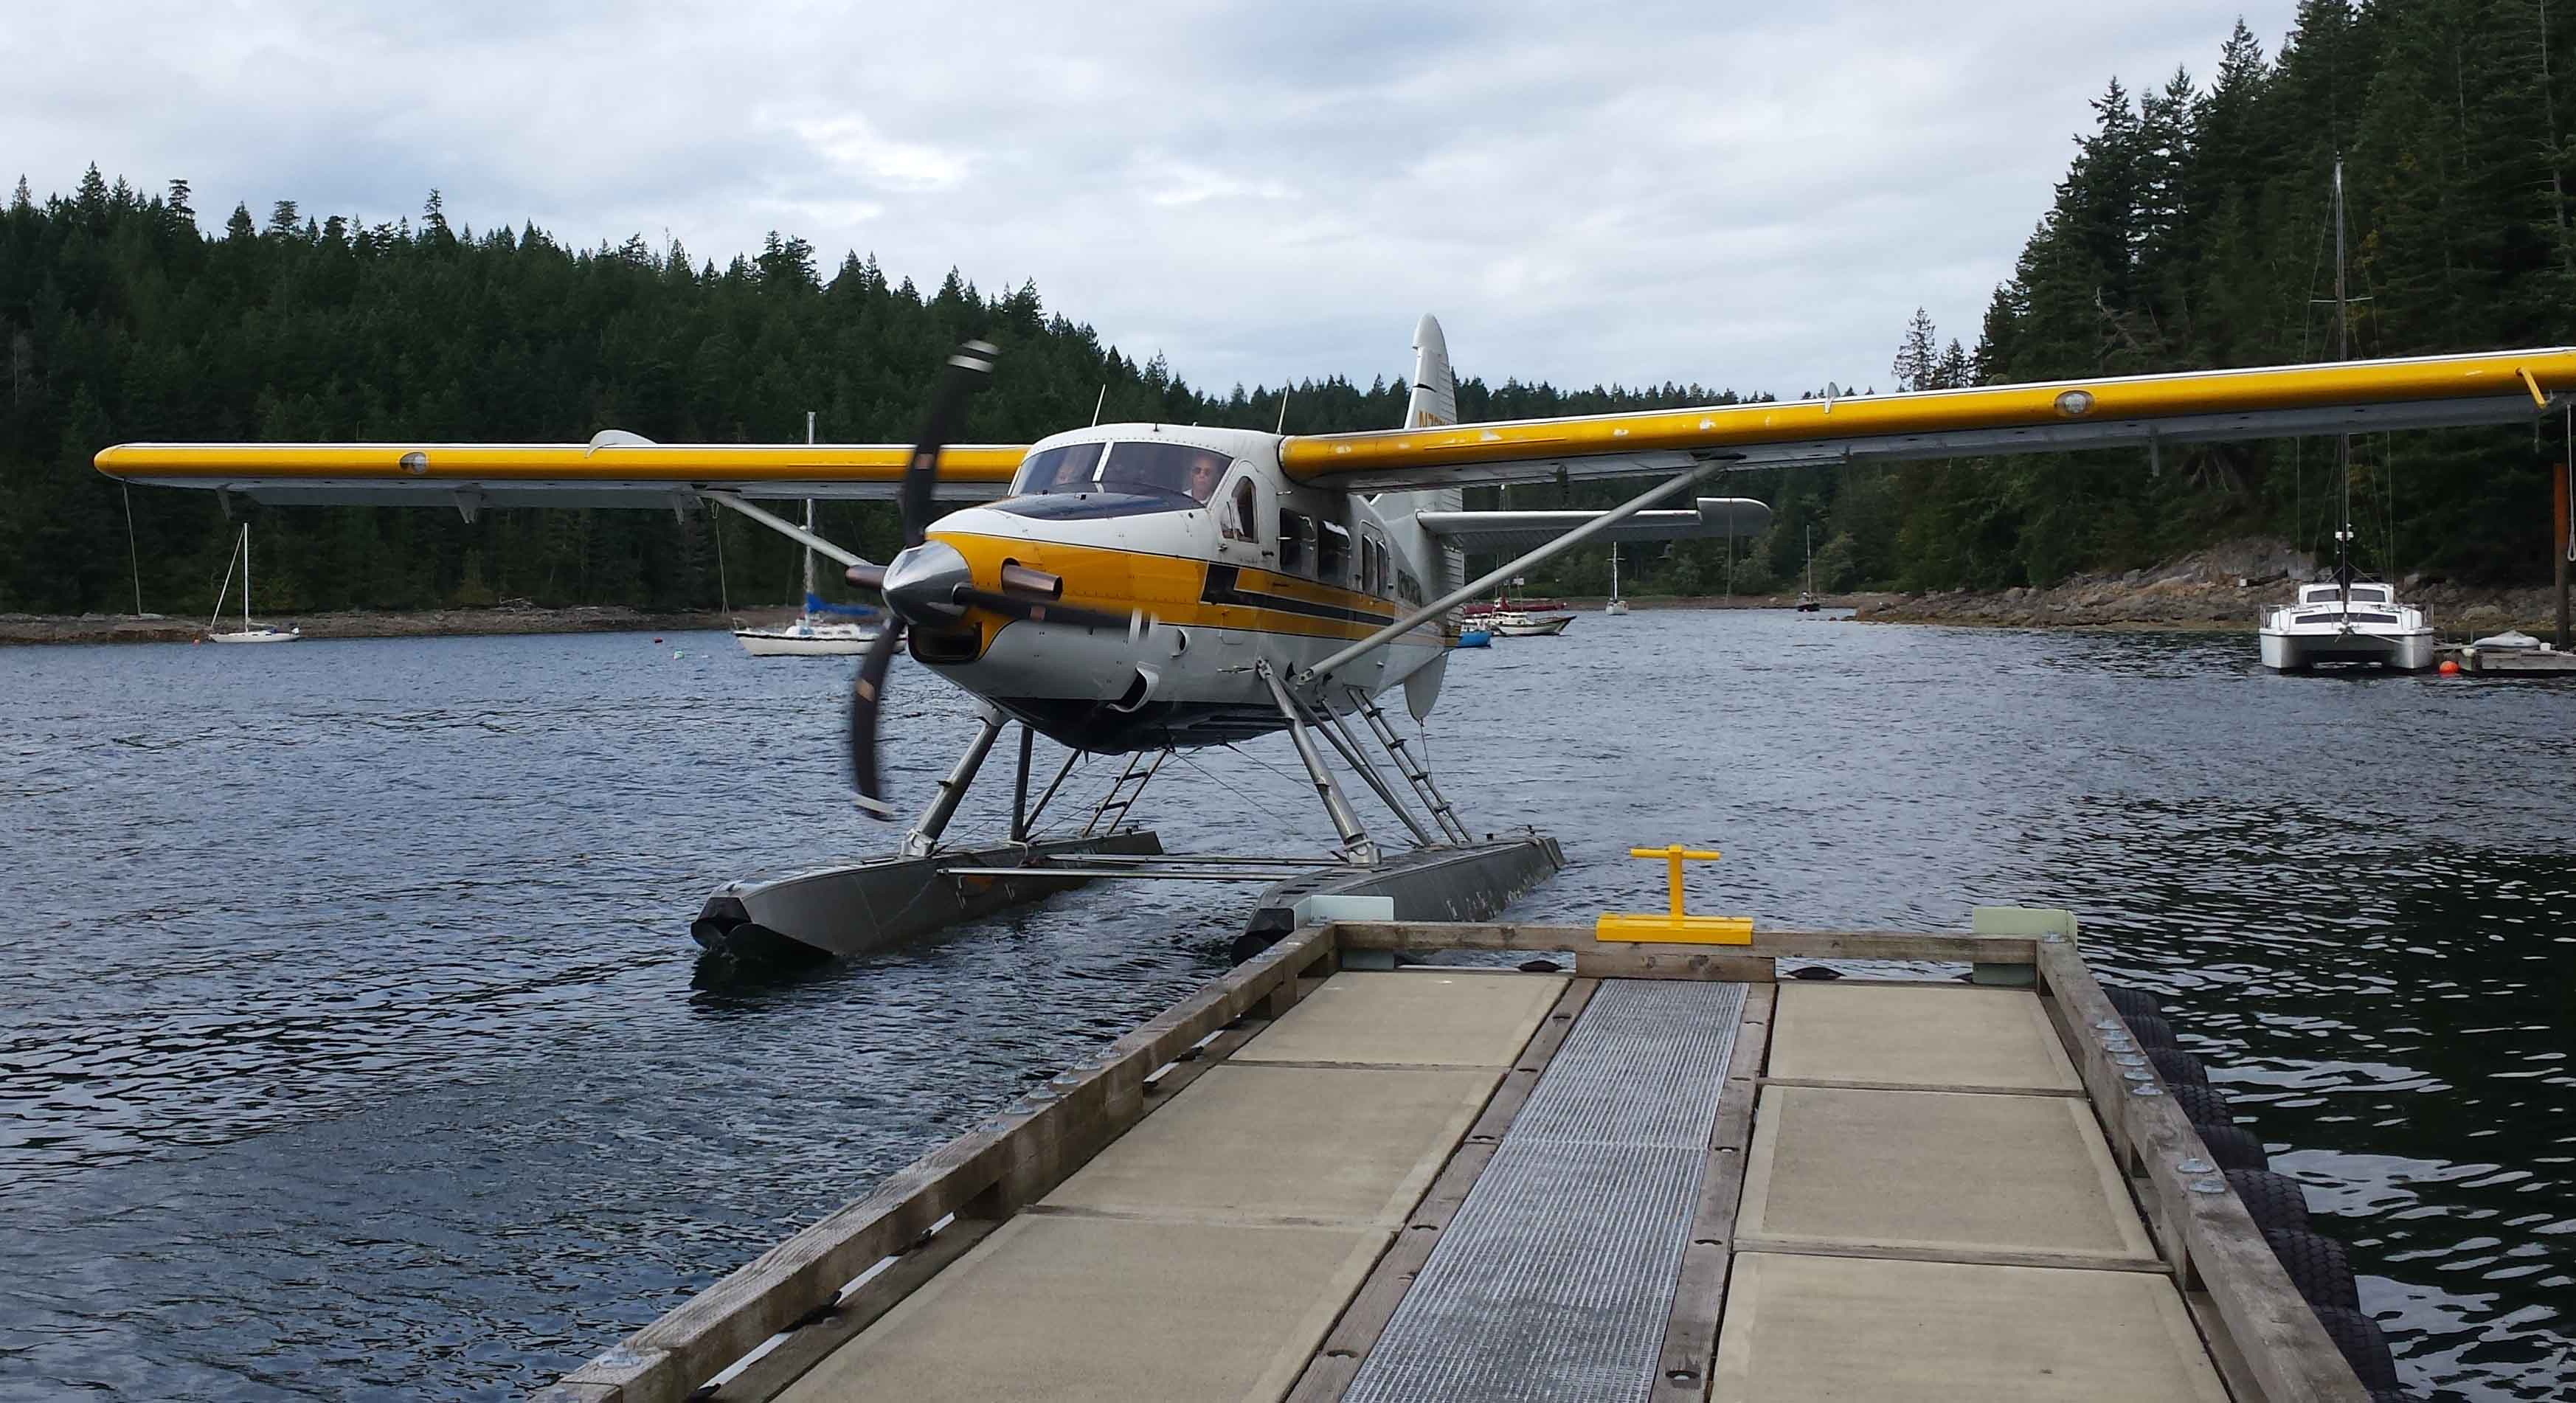 Ians plane arrives in Gorge Harbour